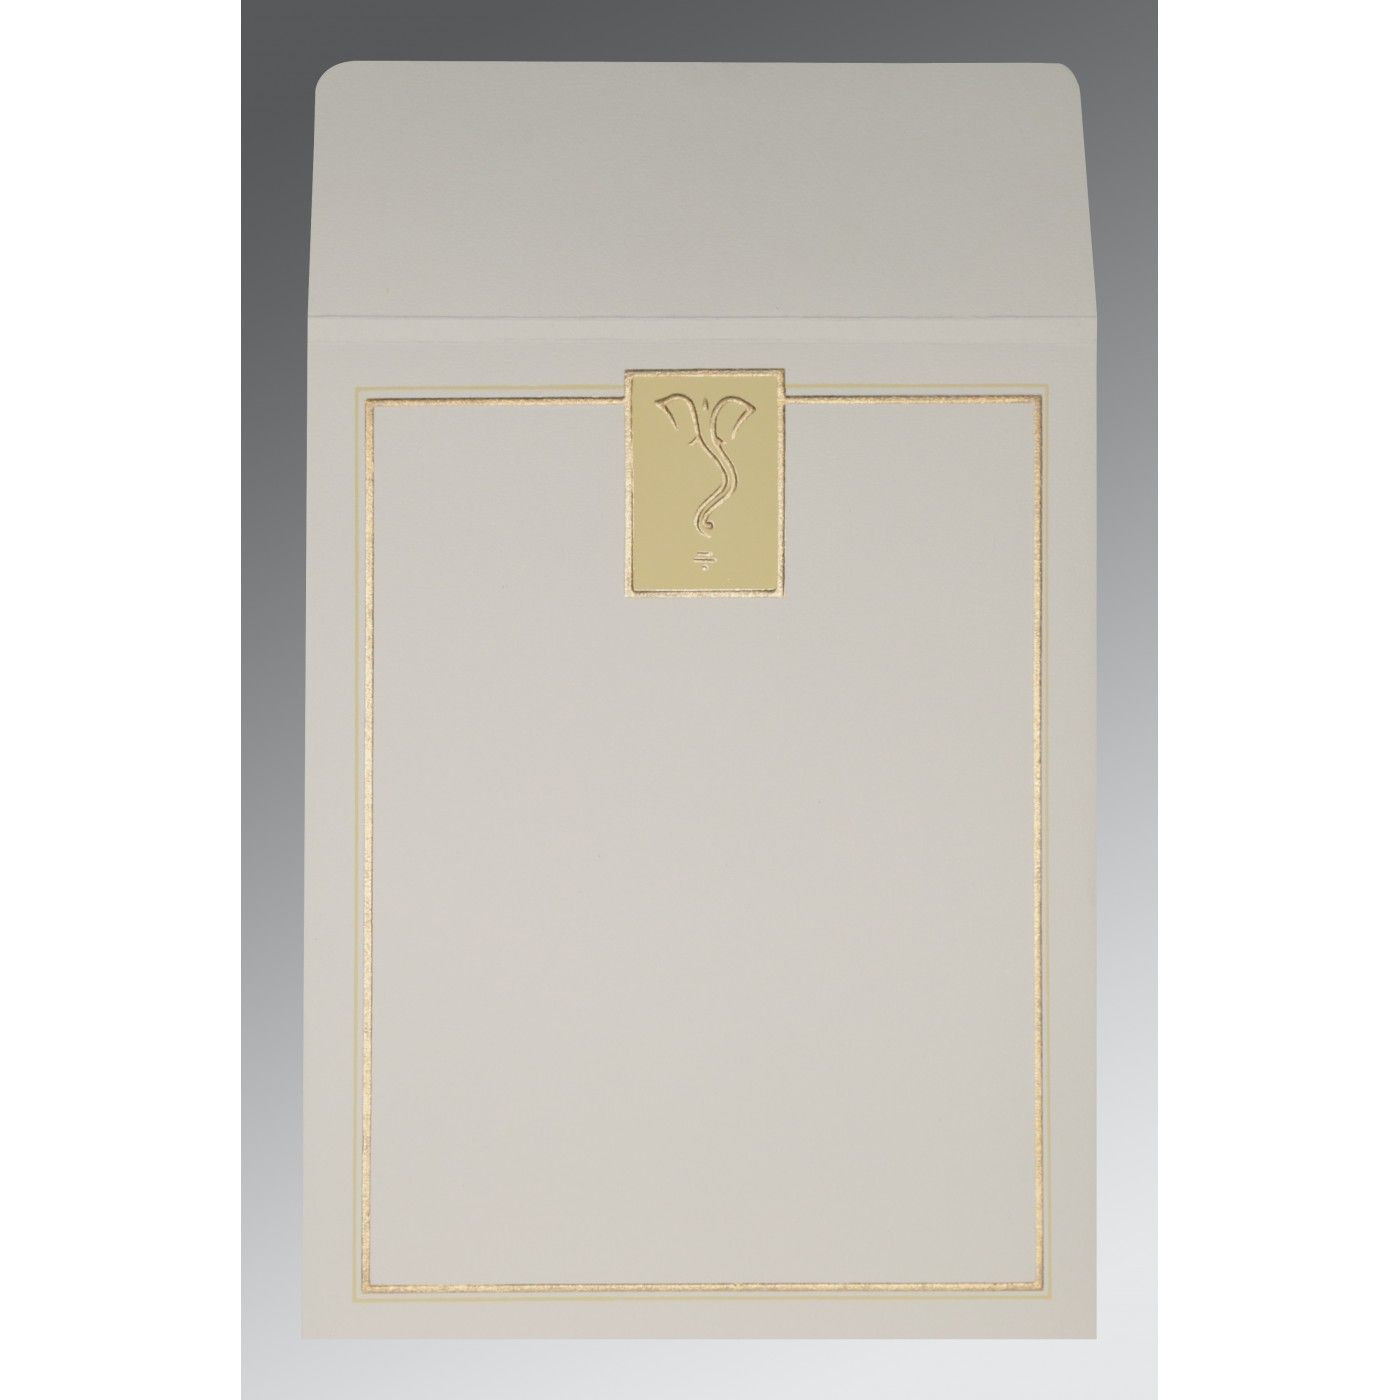 OFF-WHITE MATTE GLITTER WEDDING CARD : CW-2103 - IndianWeddingCards